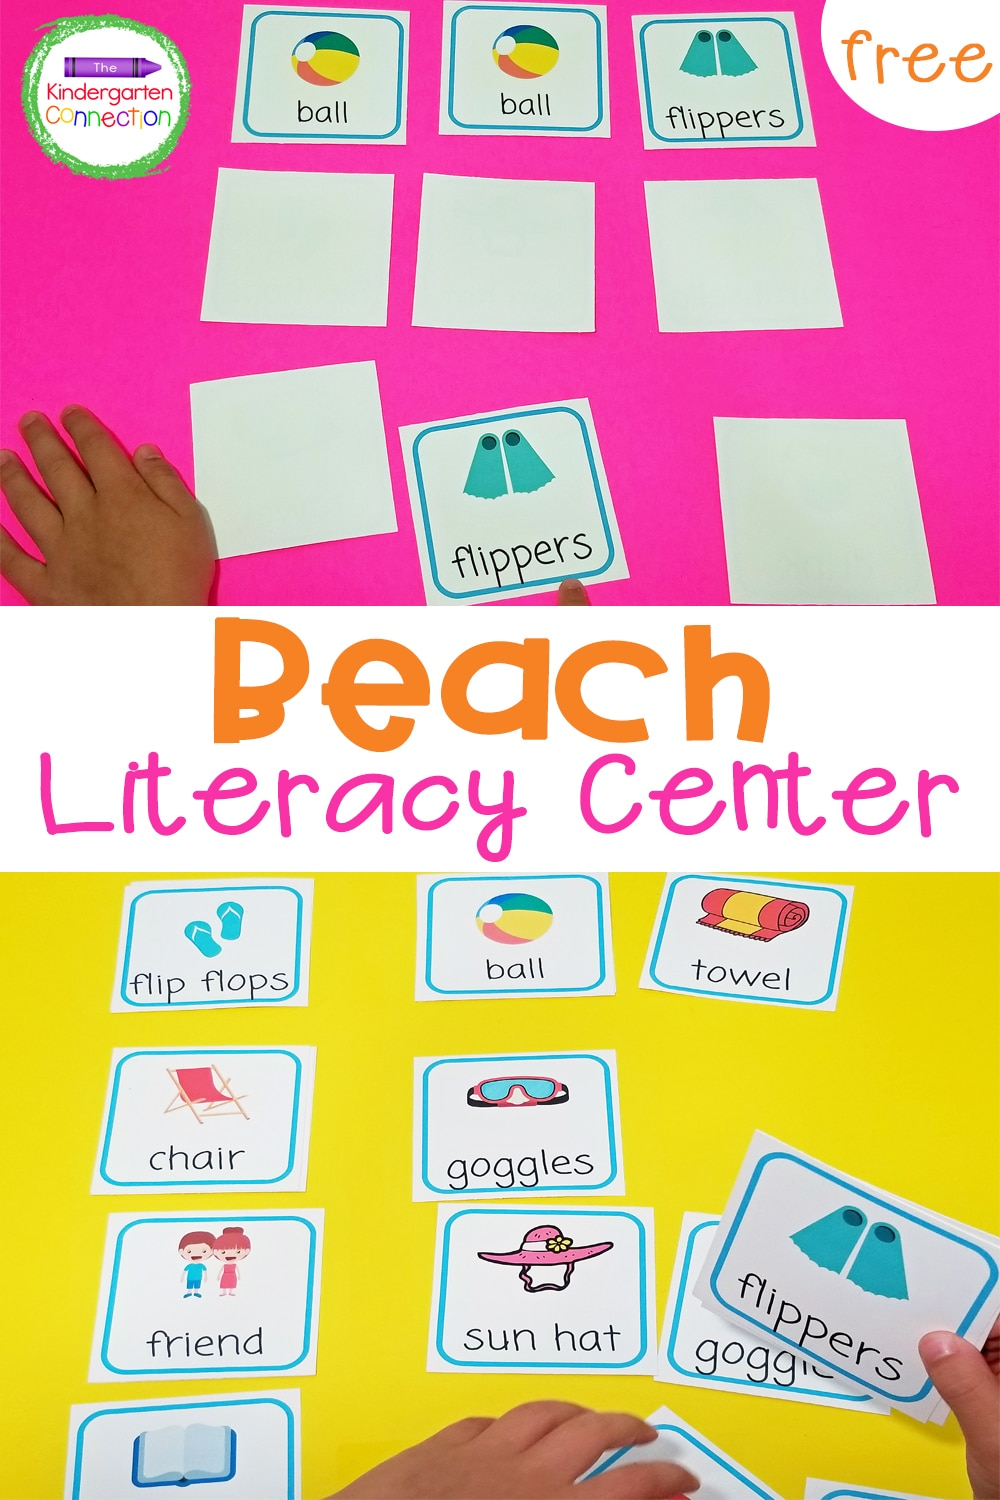 Grab these FREE Beach Vocabulary Memory Game Cards and strengthen vocabulary and memory skills with your kids all summer long!